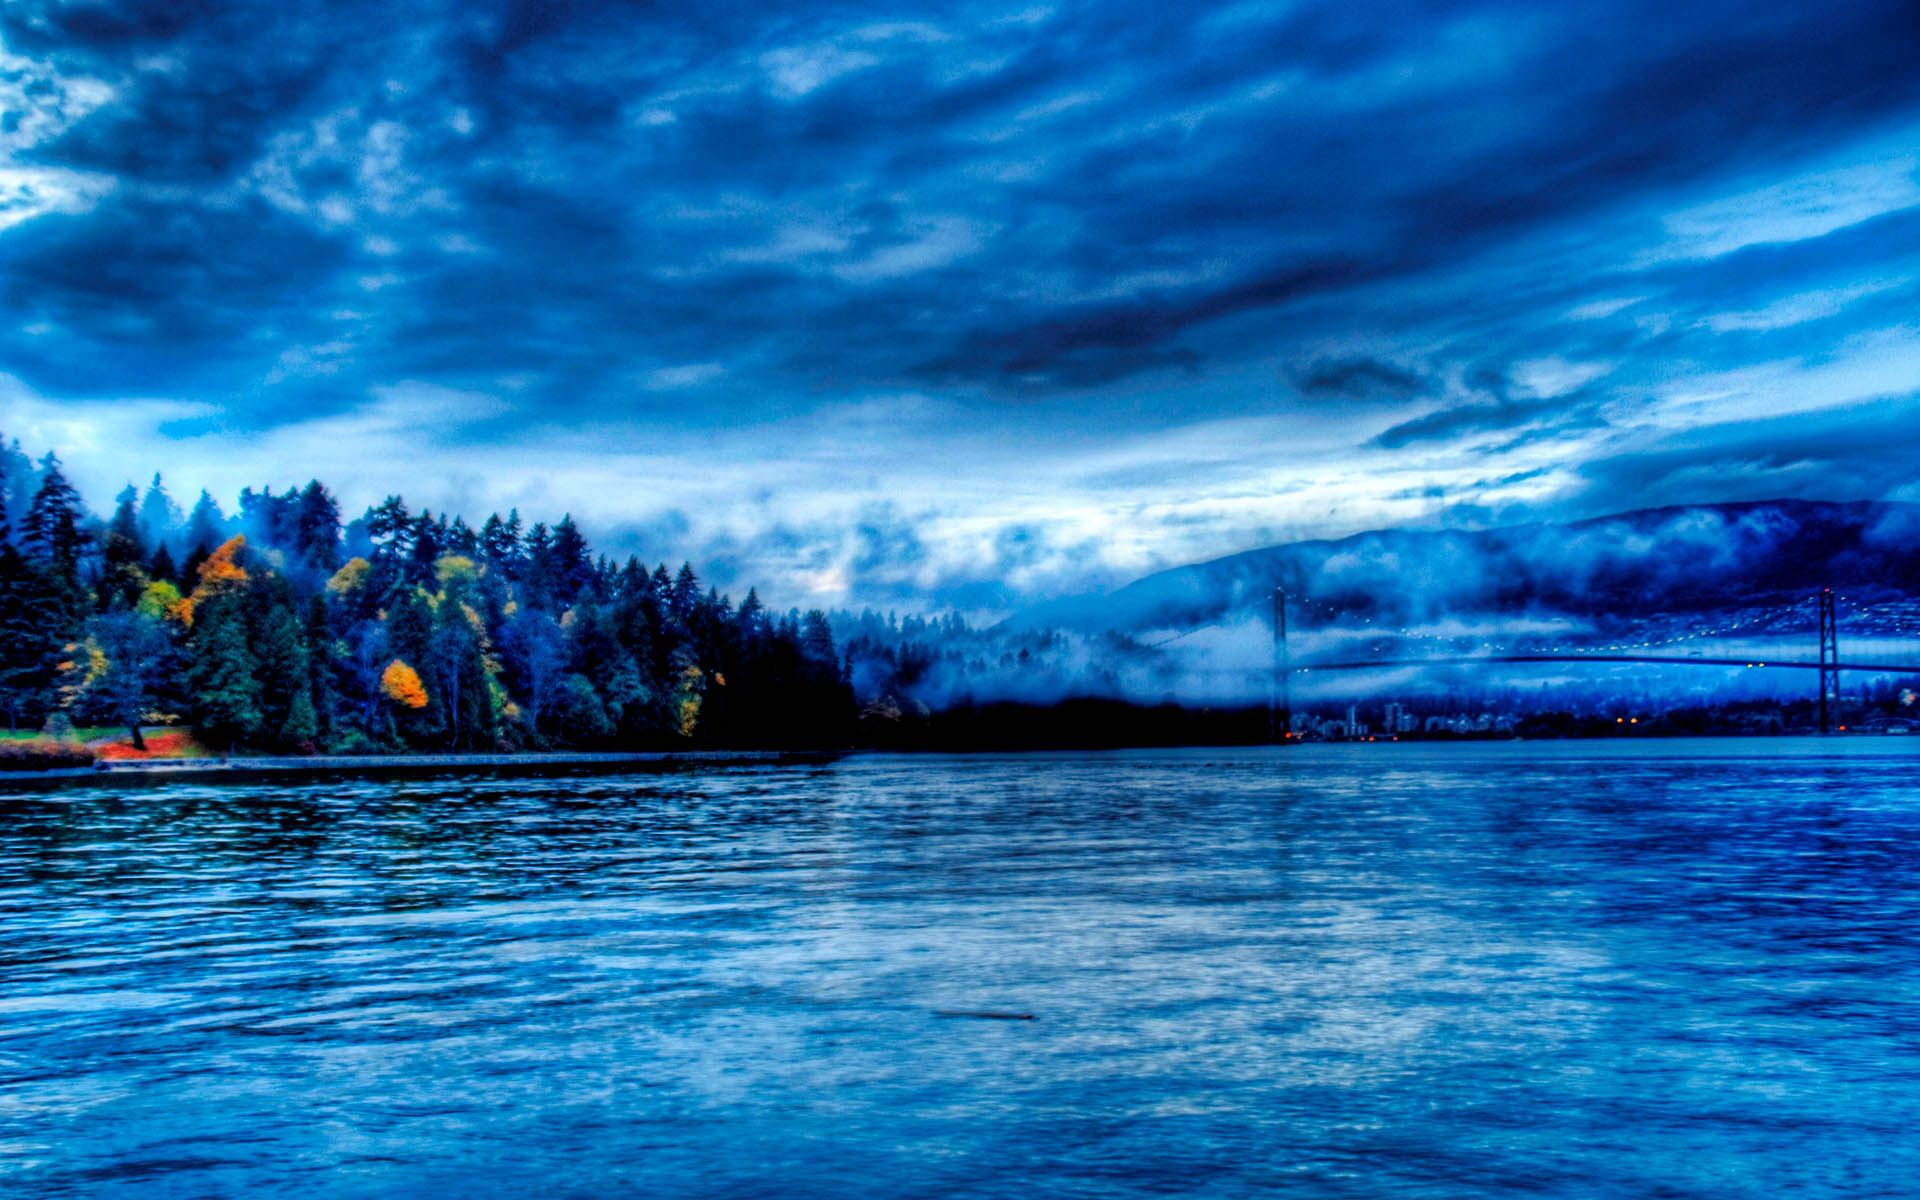 google image result for http://wallpaperstock/blue-water